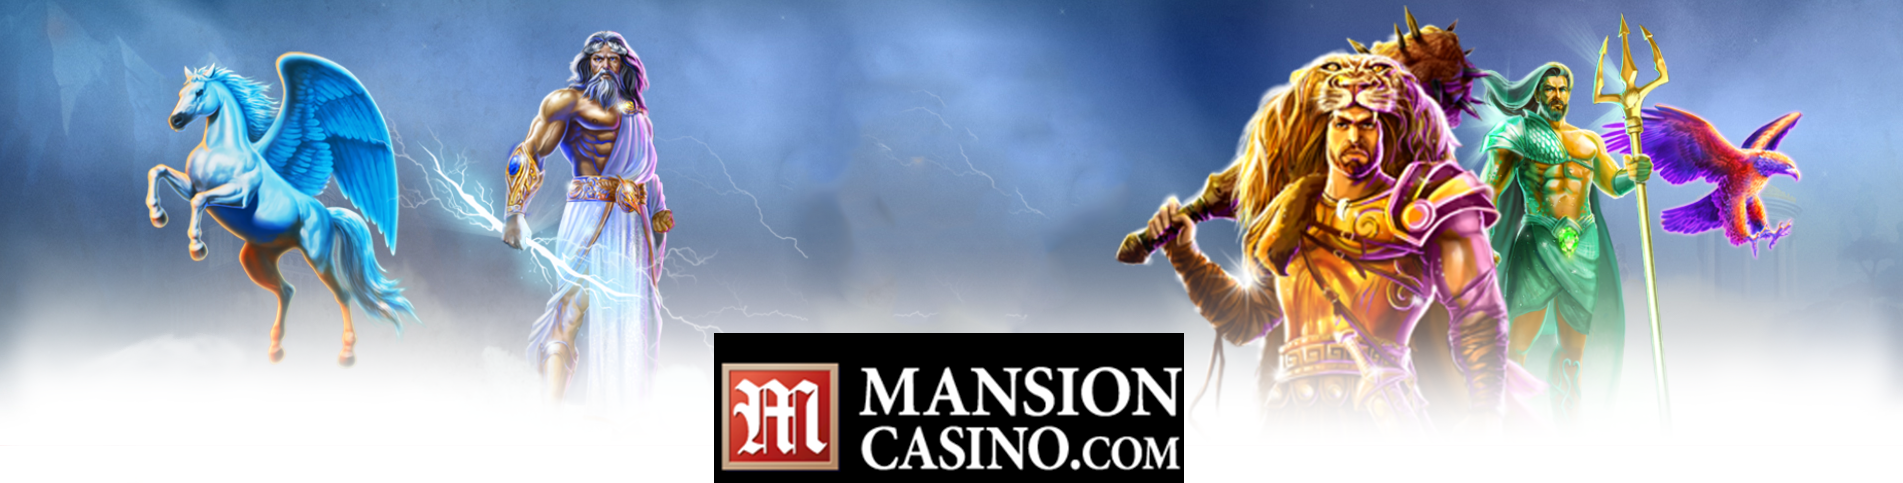 mansion casino header